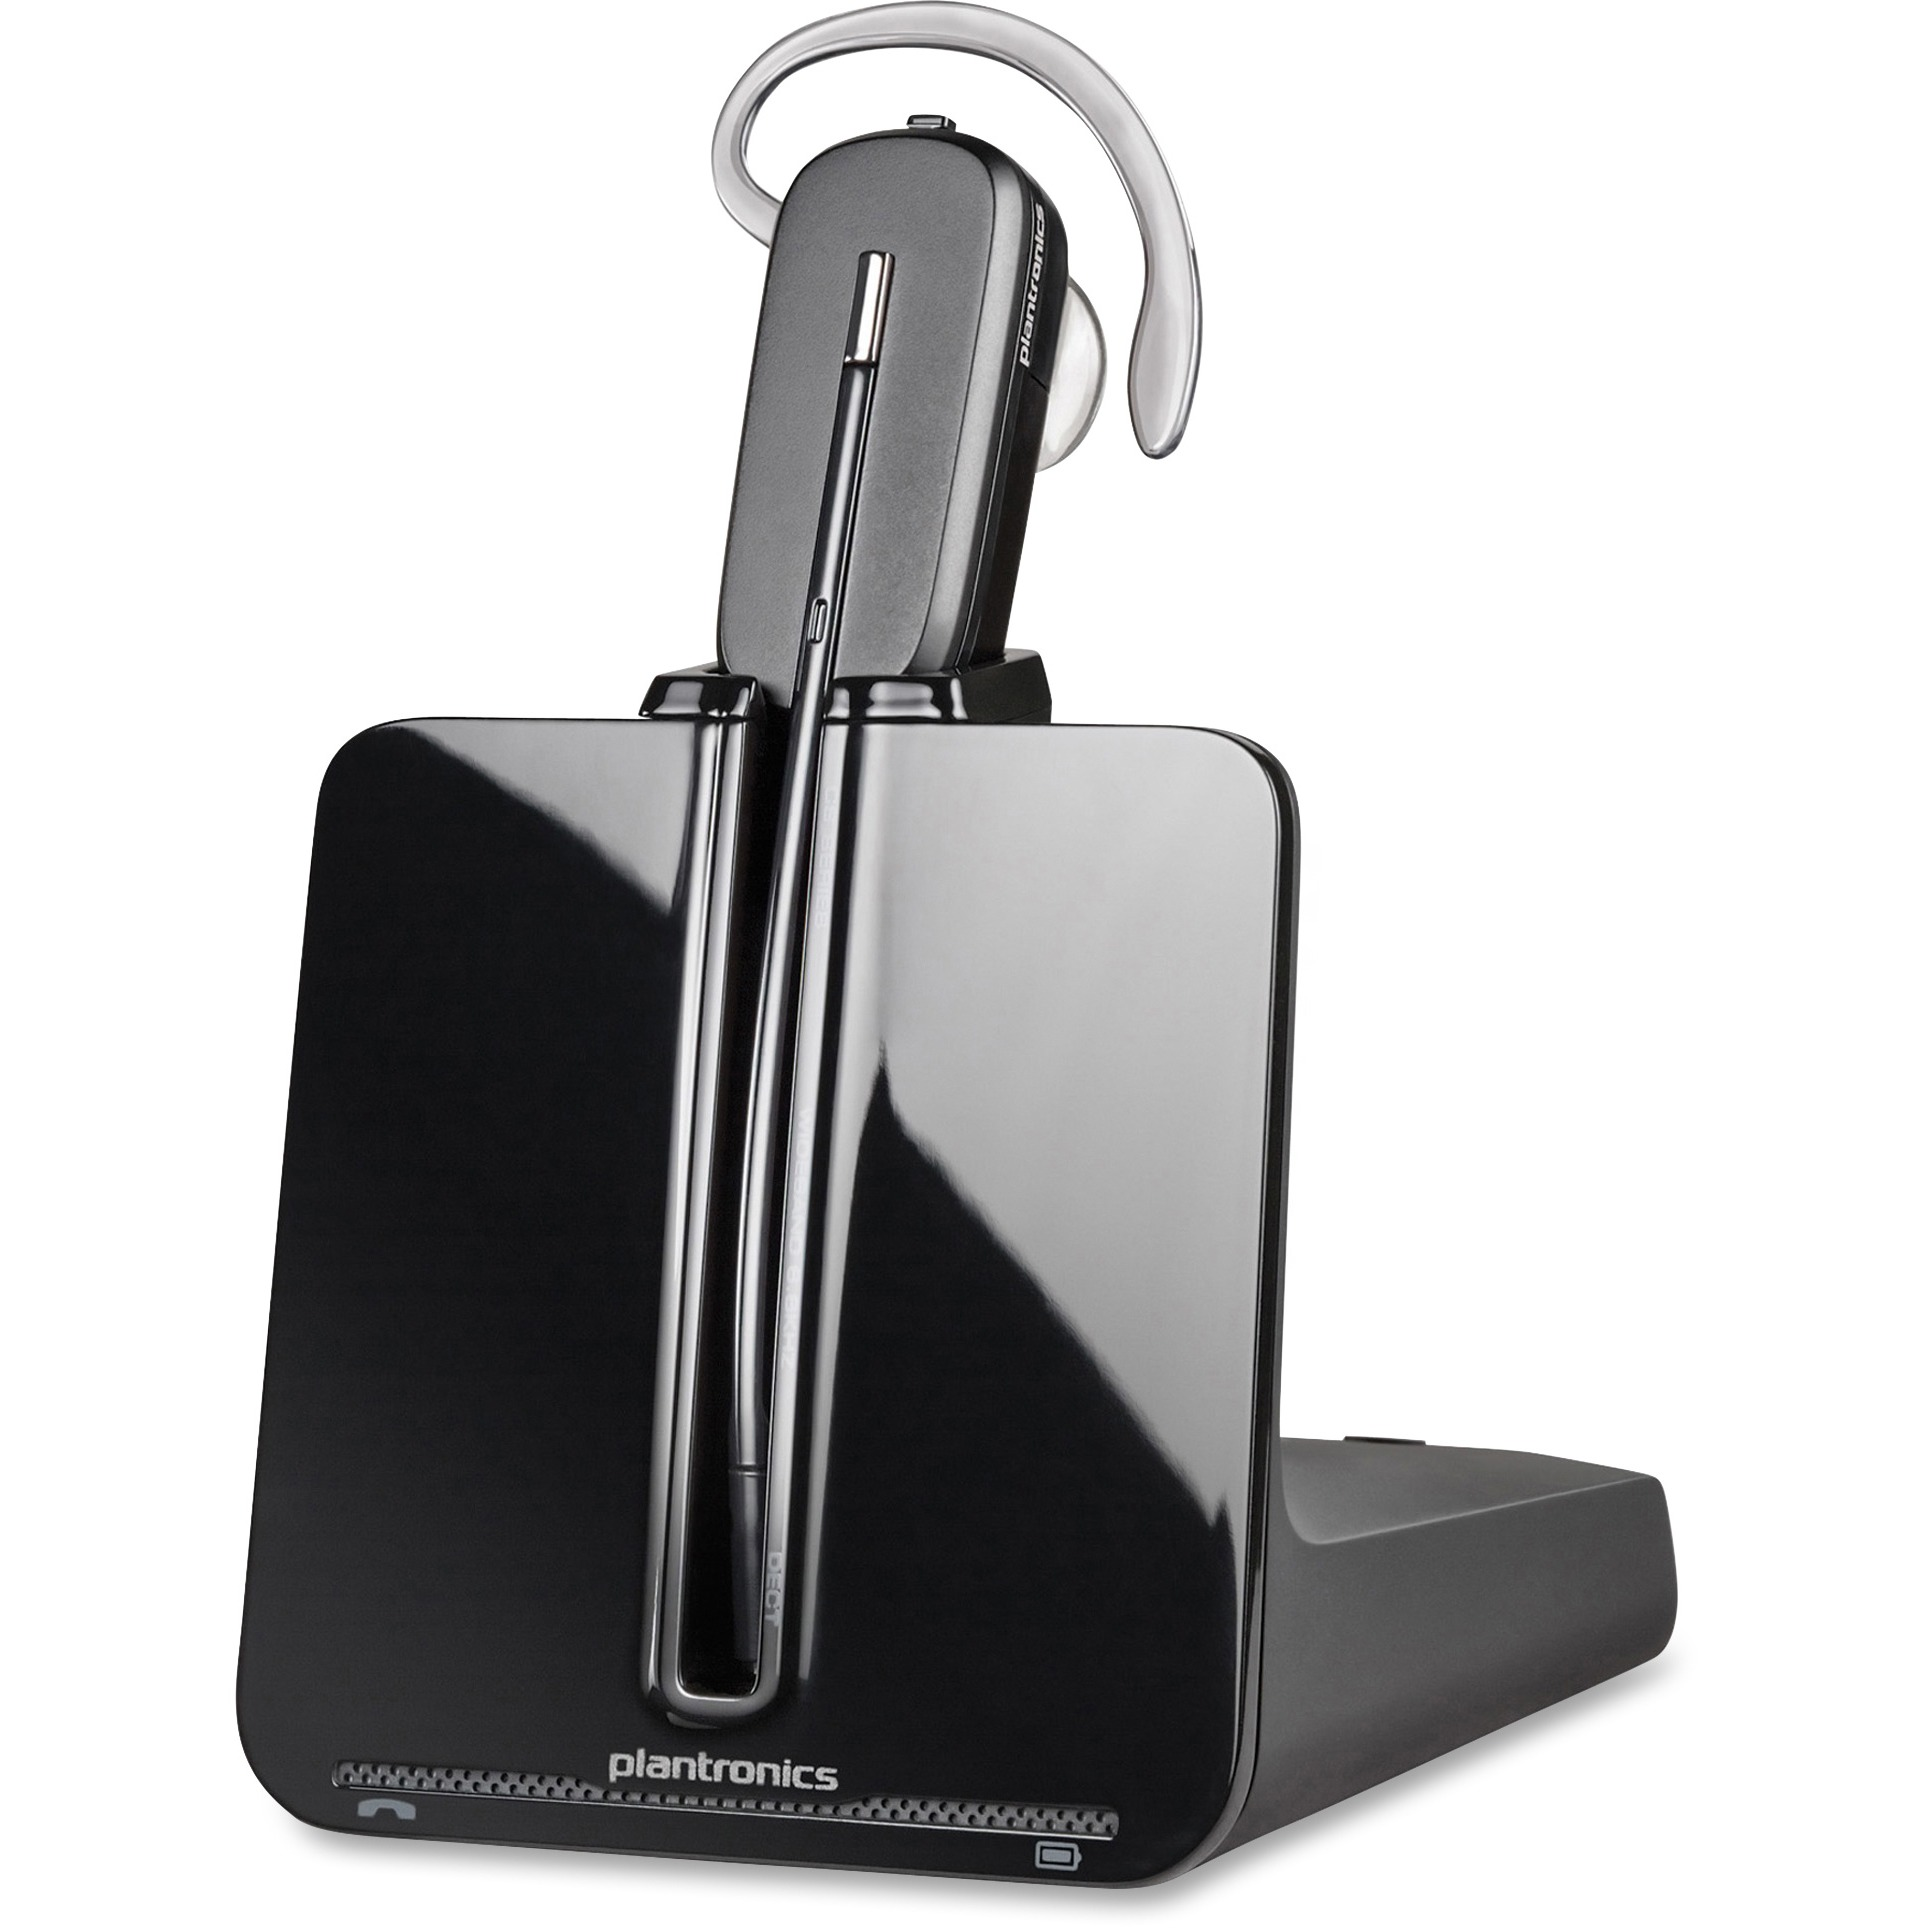 Plantronics Wireless Convertible Headset System